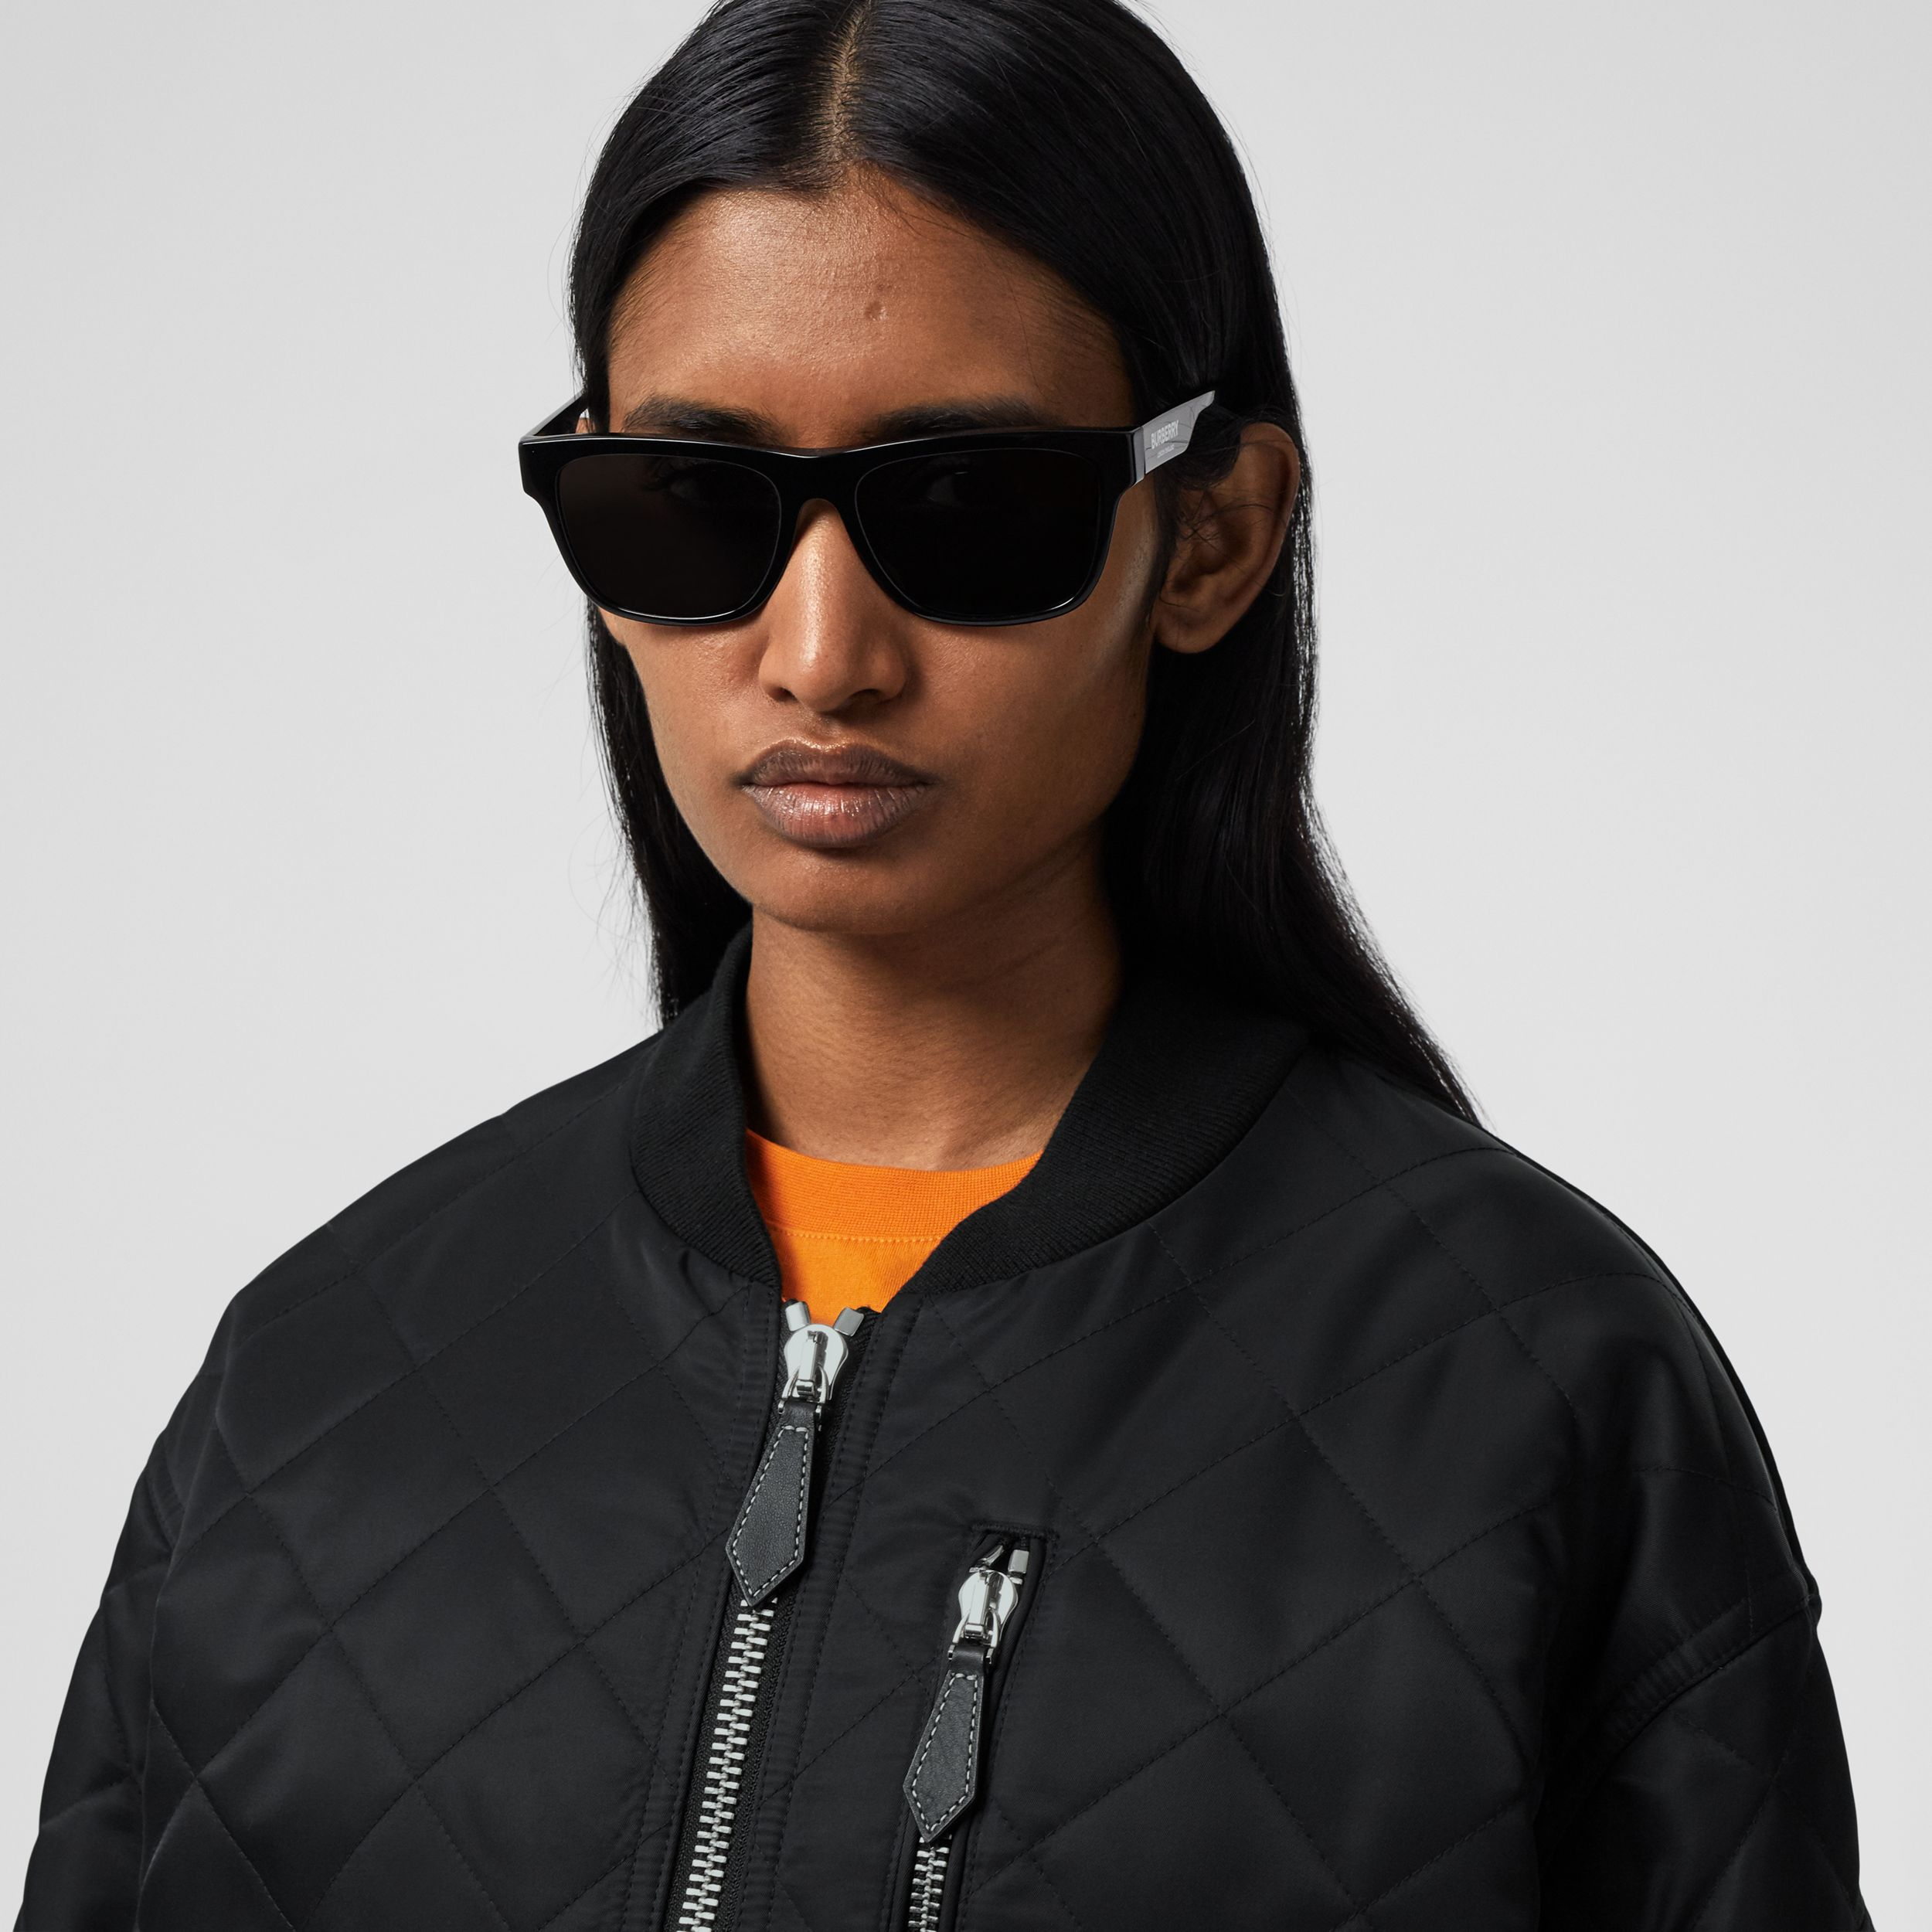 Diamond Quilted Nylon and Cotton Bomber Jacket in Black/black - Women | Burberry Singapore - 2